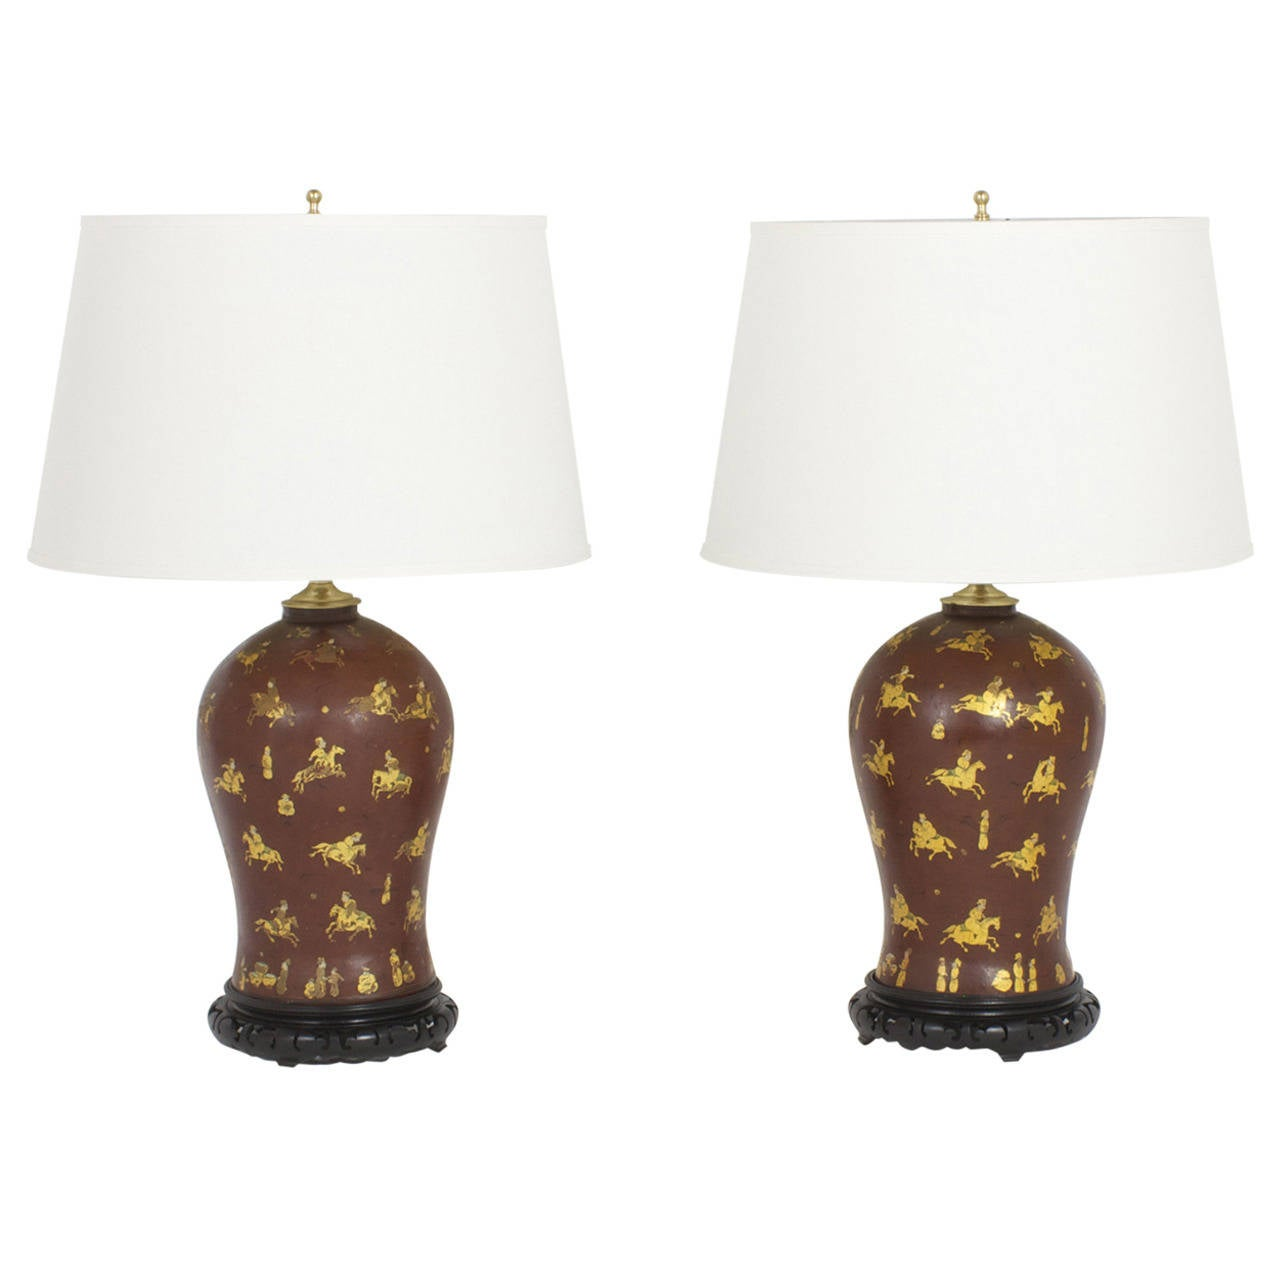 Pair of Polo Player Table Lamps